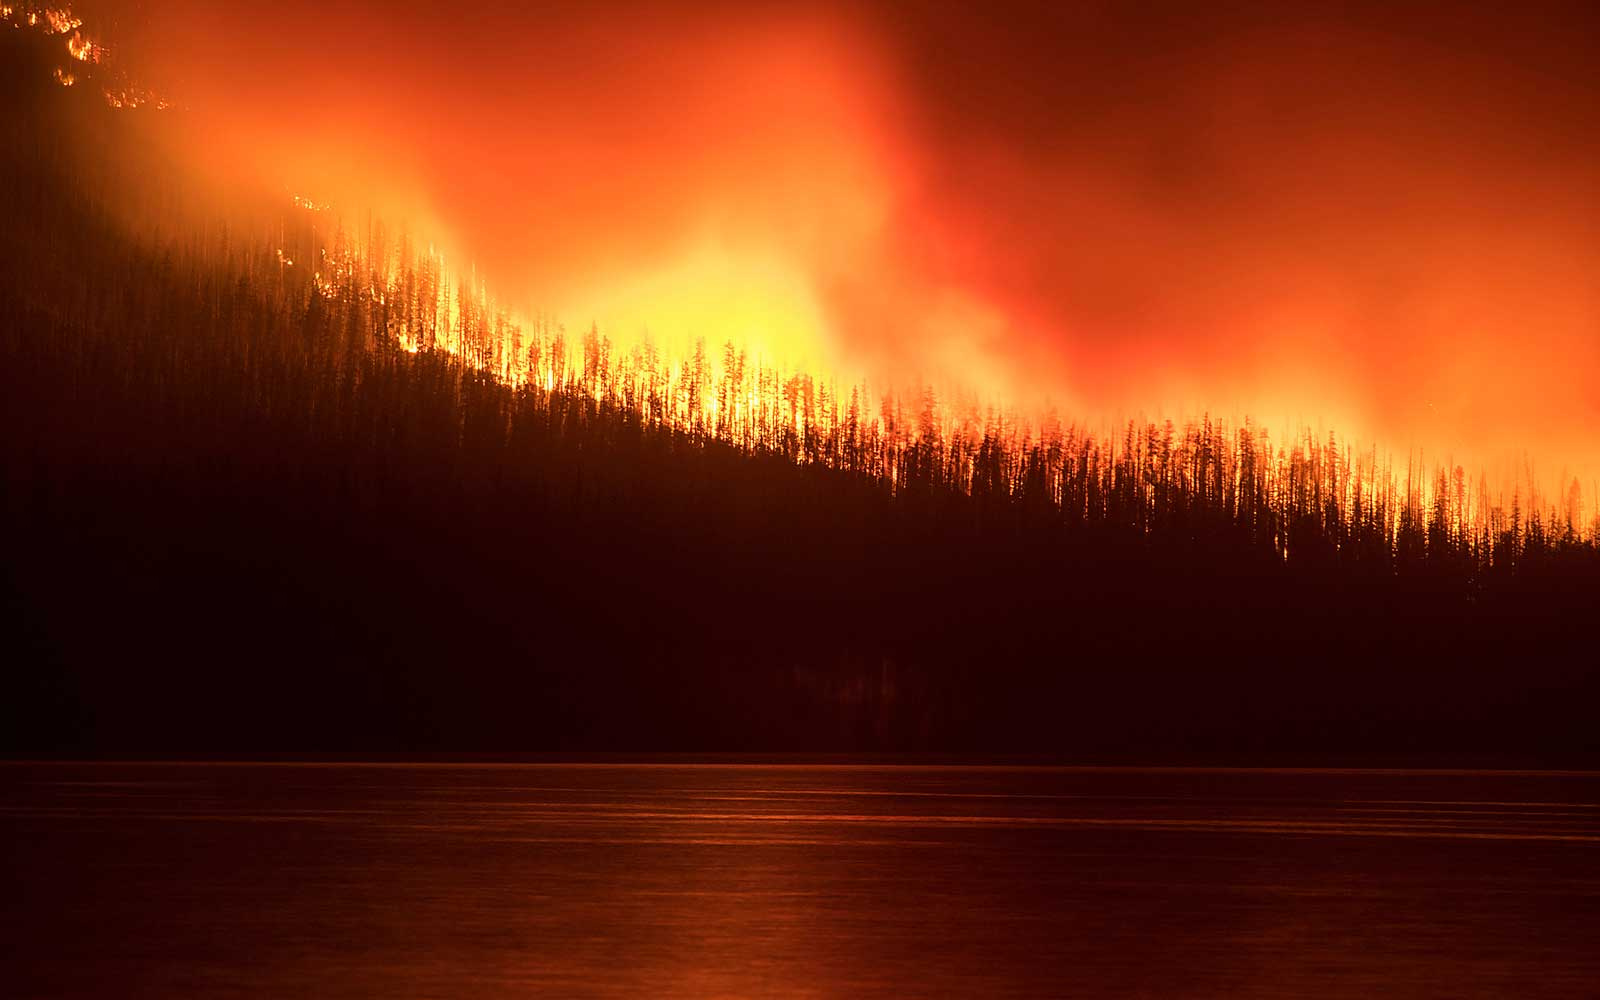 Sunday, Aug. 12, 2018, a fire burns next to Lake McDonald in Glacier National Park in northwest Montana.